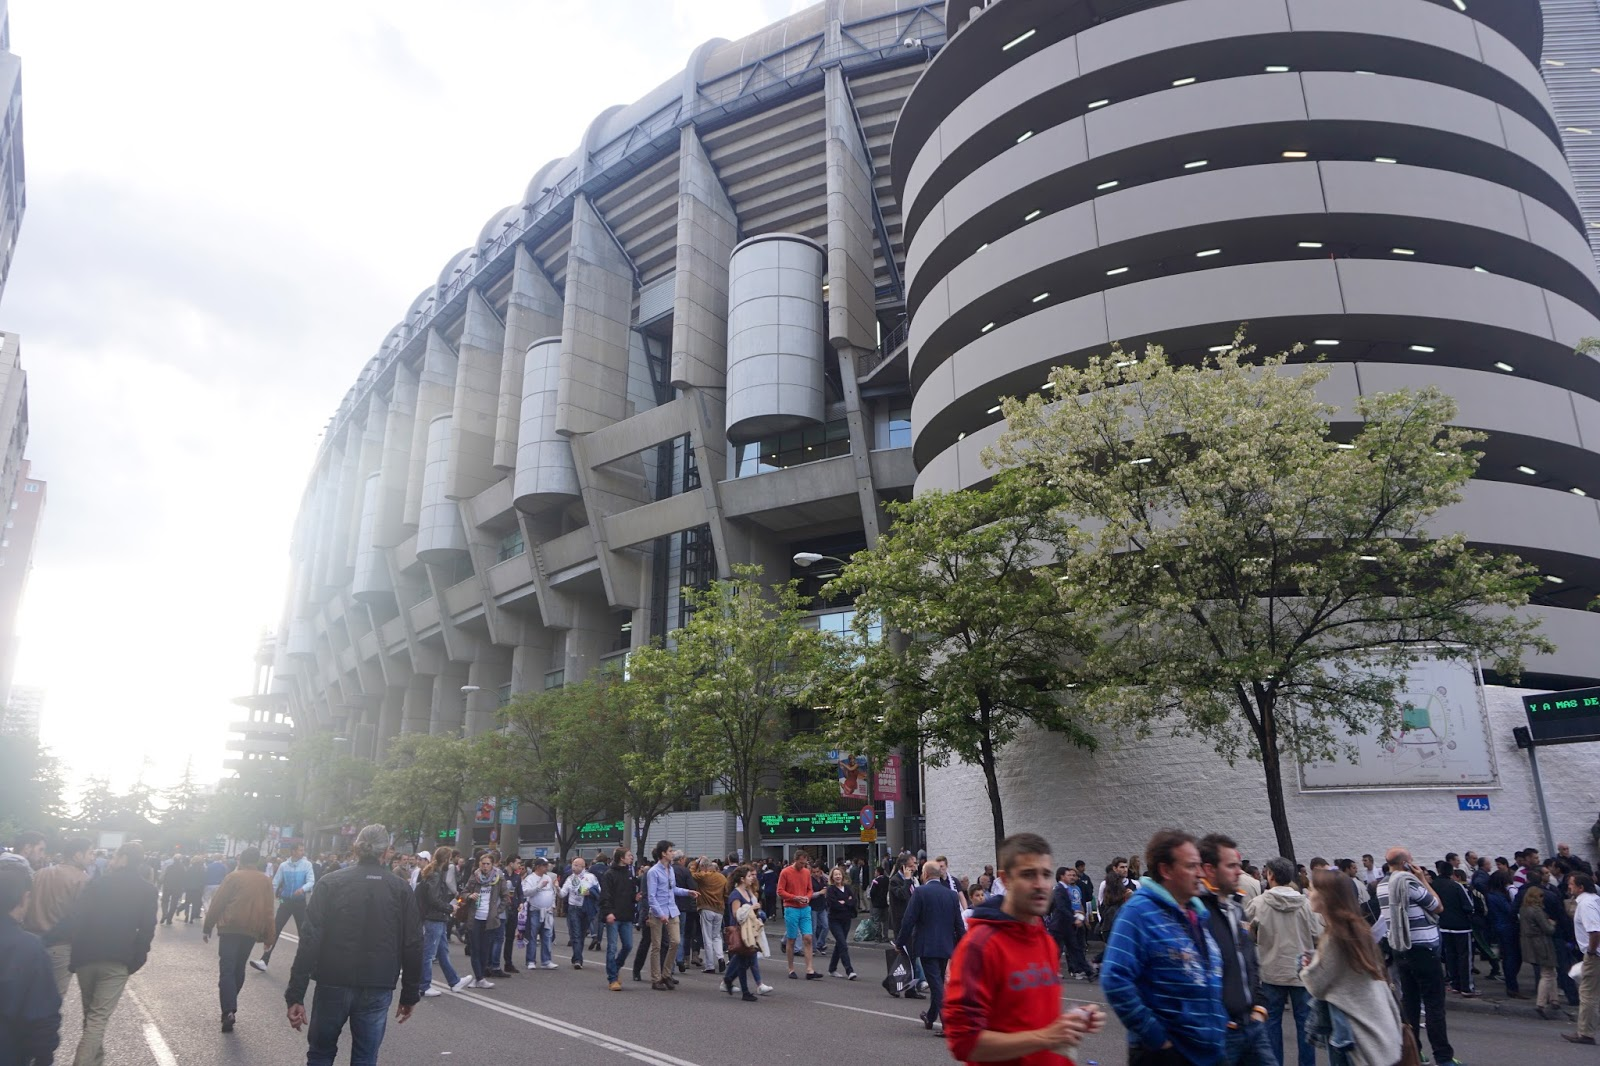 Walking outside Santiago Berbabeu Stadium in Madrid amongst the crowd before a Real Madrid match